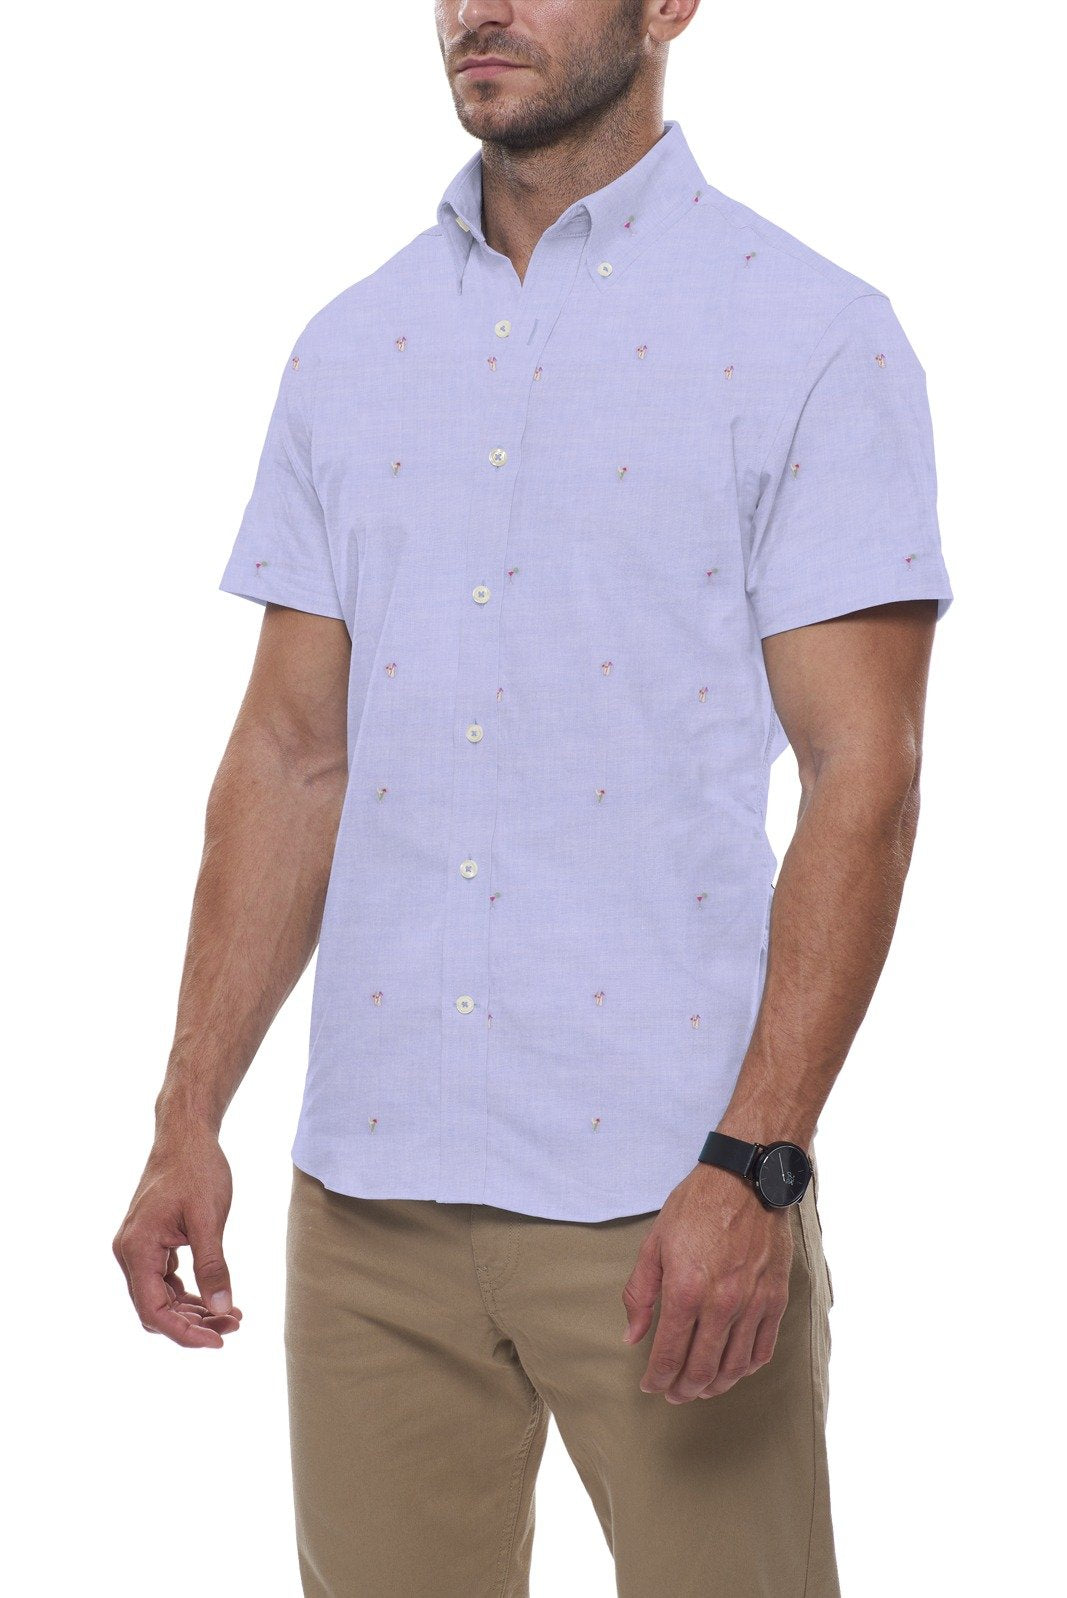 Beach Days Fil Coupe in Light Blue: Button-Down Collar, Short Sleeve